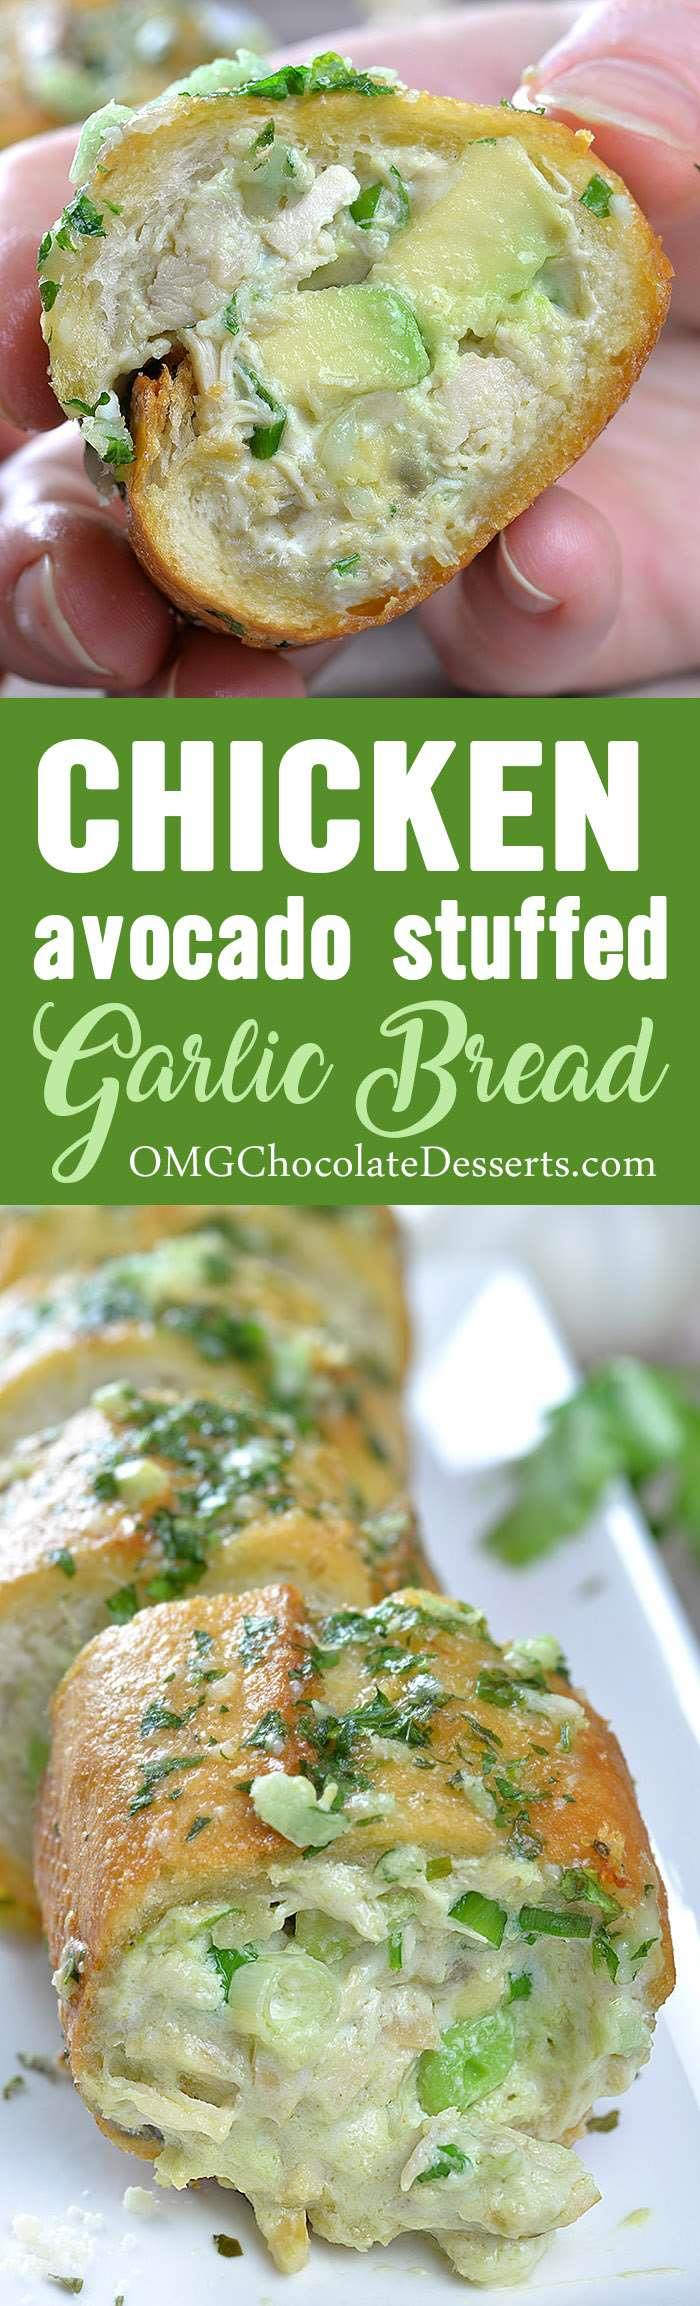 Love Cheesy Garlic Bread? Then you'll like this quick and easy Chicken Avocado Stuffed Garlic Bread recipe! ! You can serve it on weeknight as light and easy summer dinner or pack as a sandwich for lunch and take to work.